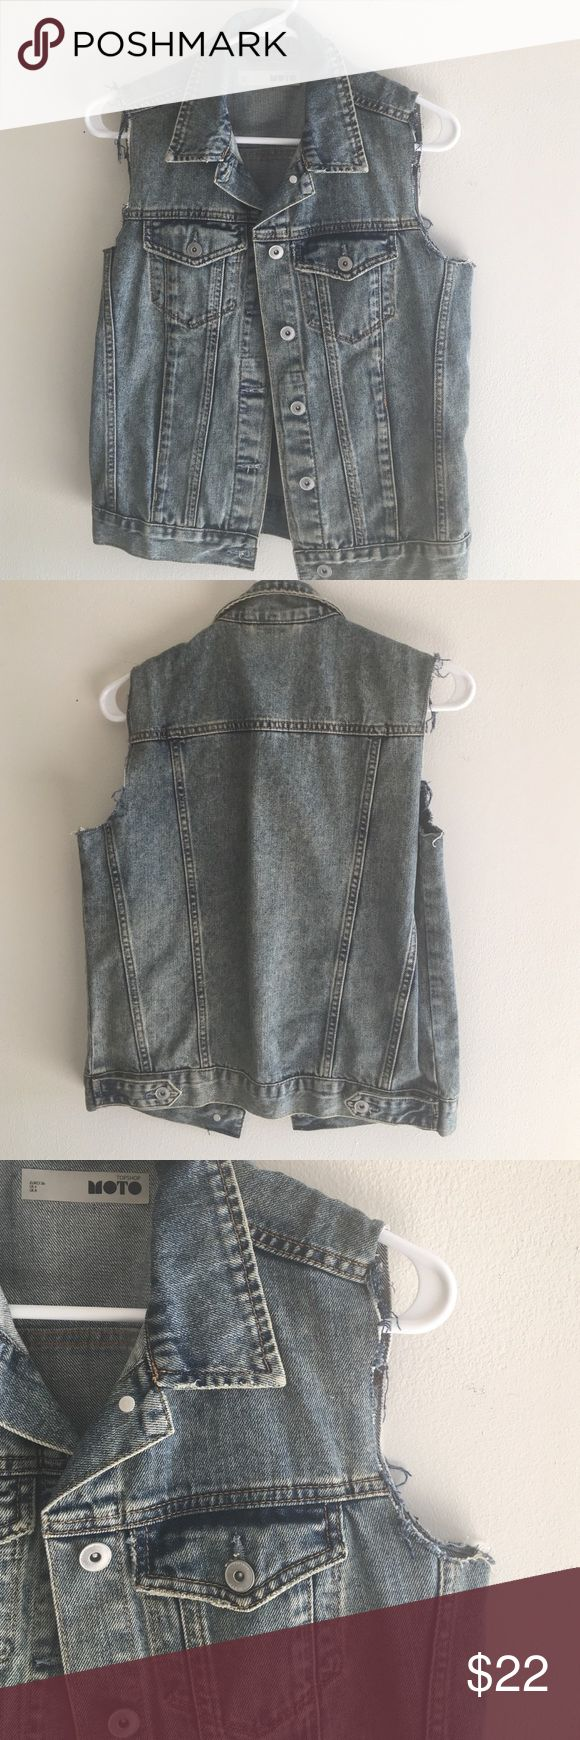 Topshop Moto Sleeveless Denim Jacket Sleeveless denim jacket from Topshop. In excellent condition. Cutoff sleeve detail. Last photo is not the same wash, but is reflective of the fit. US 4/UK 8/EURO 36 (fits like a small) Topshop Jackets & Coats Vests